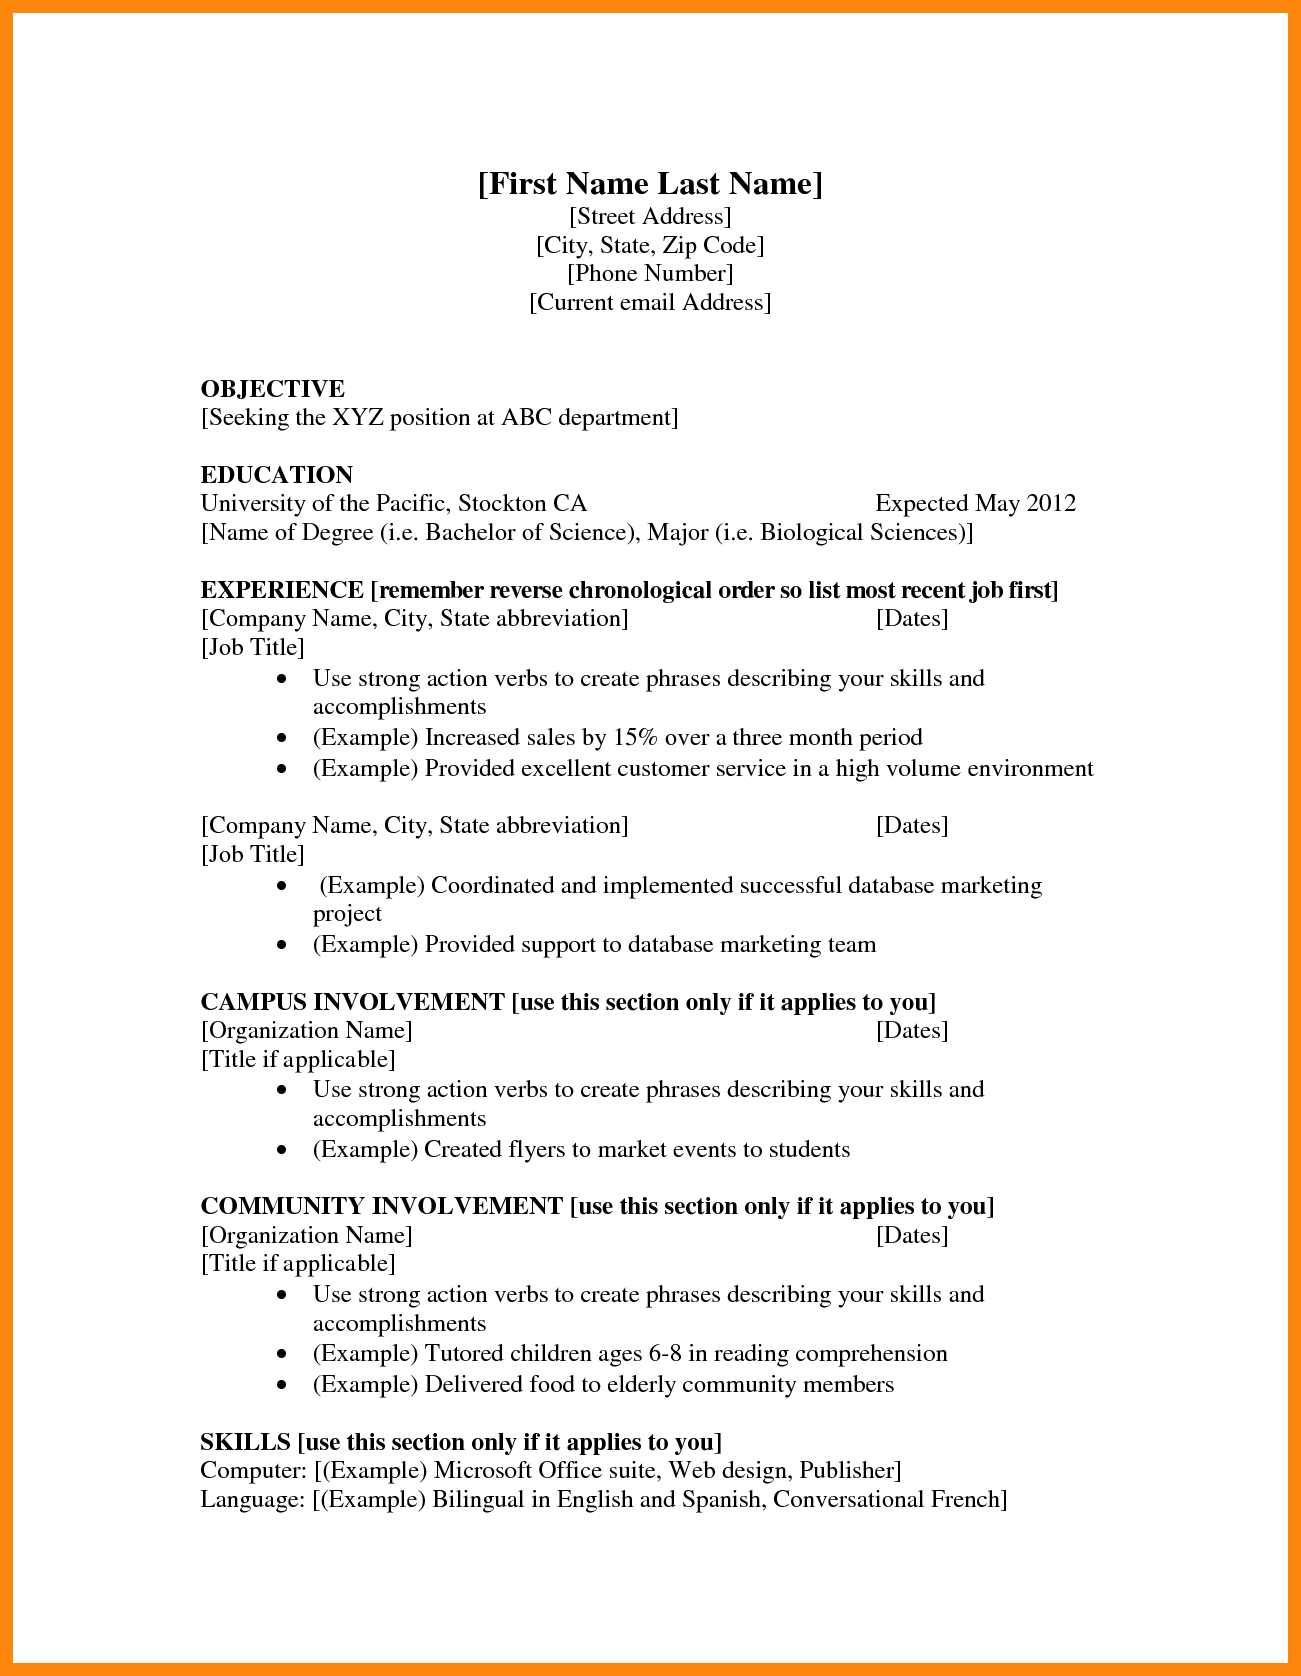 bachelor of science abbreviation resume awesome examples teenage resumes for first job Resume Bachelor Of Science Resume